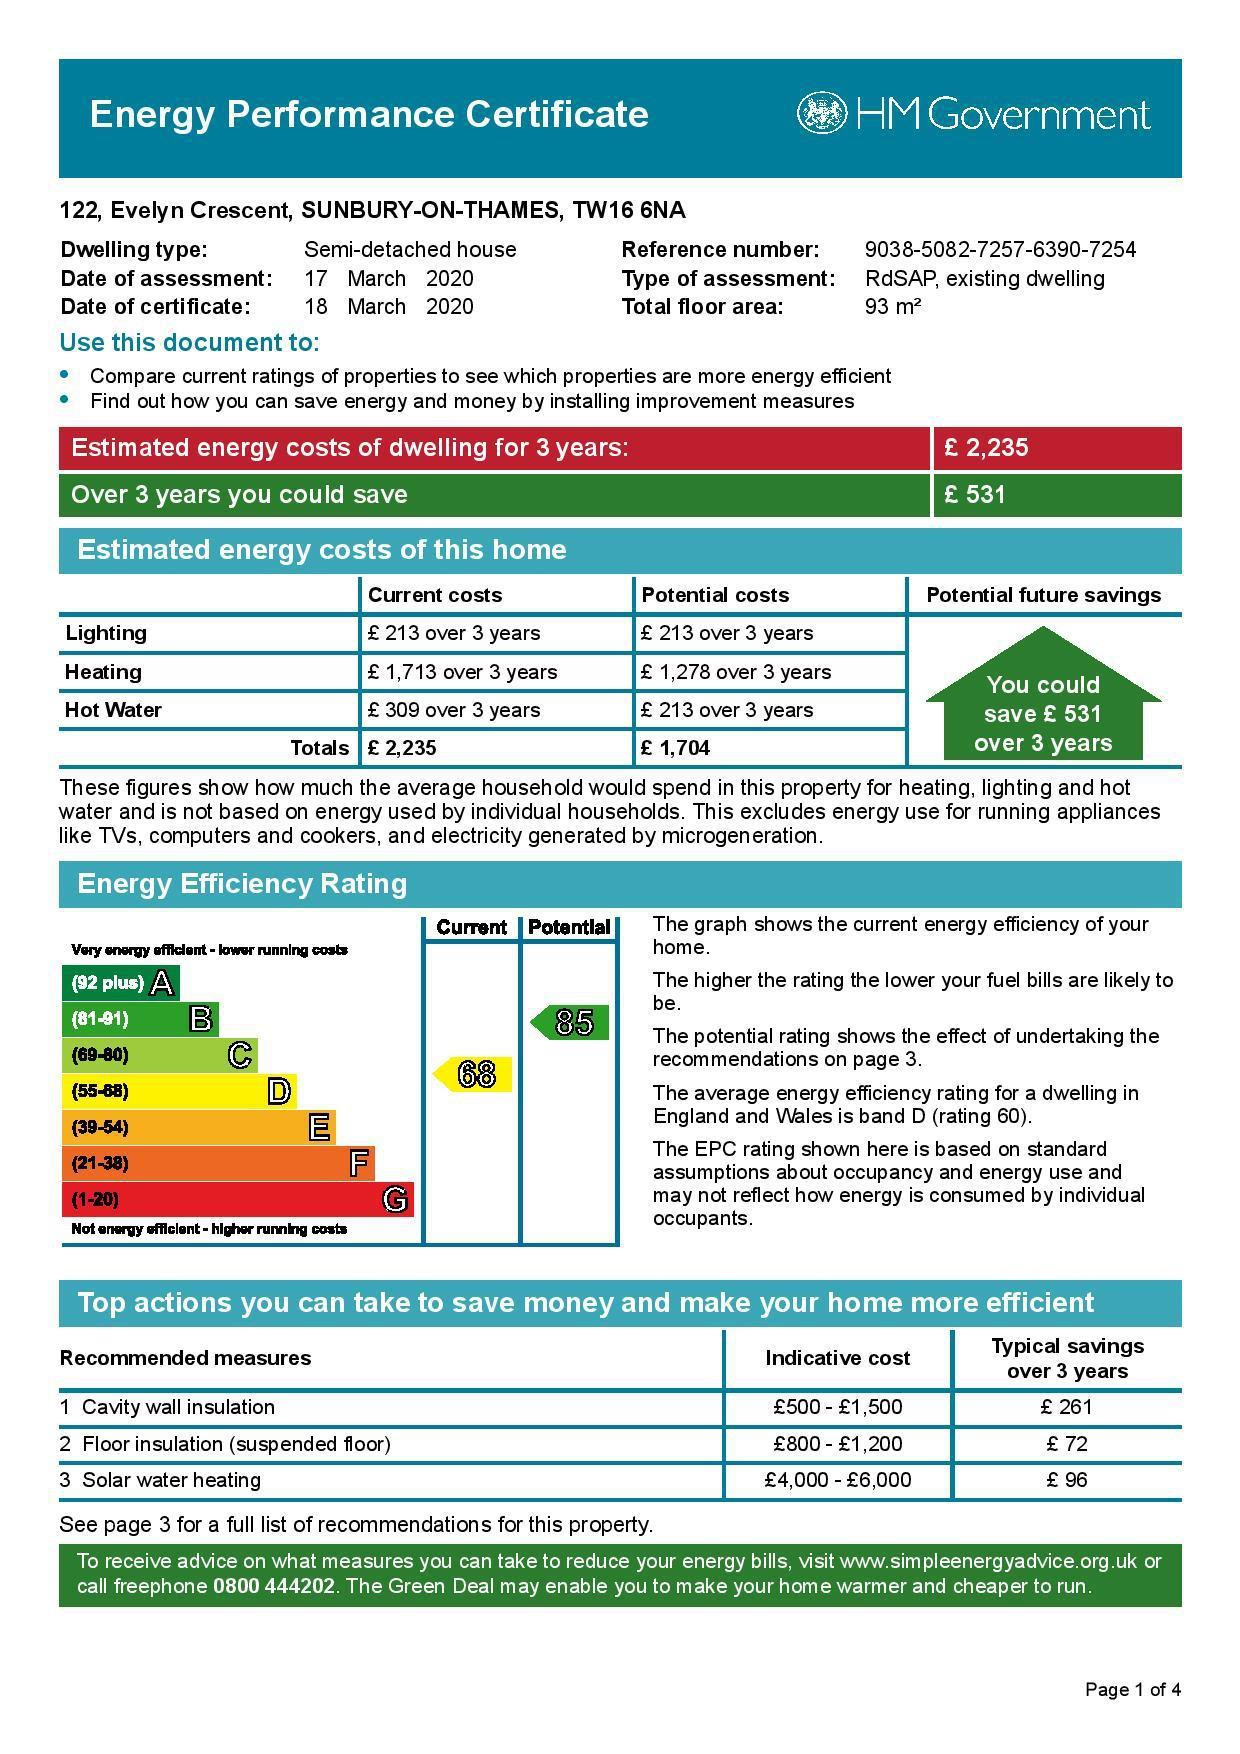 EPC Graph for 122 Evelyn Crescent, Sunbury-On-Thames, Surrey TW16 6NA